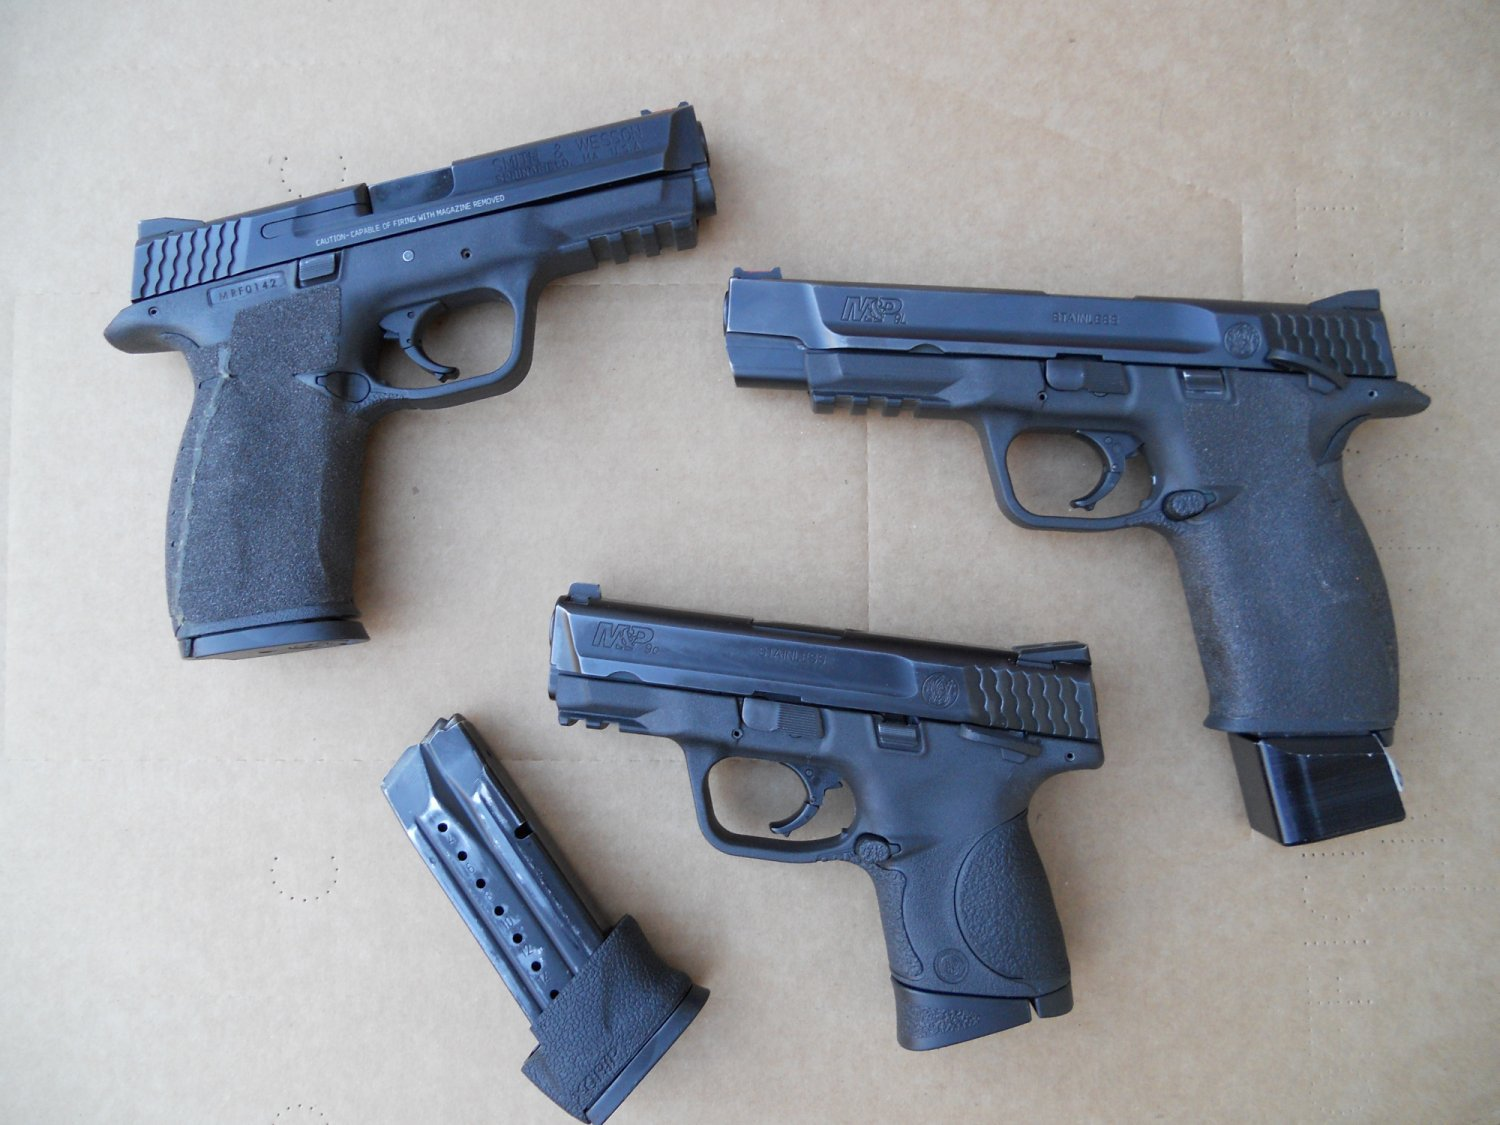 <!--:en-->Smith & Wesson (S&W) M&P High-Capacity Tactical Pistols for Competition and Personal Protection: An In-Depth Military Operator/Competition Shooter's Analysis (Photos and Video!)<!--:-->